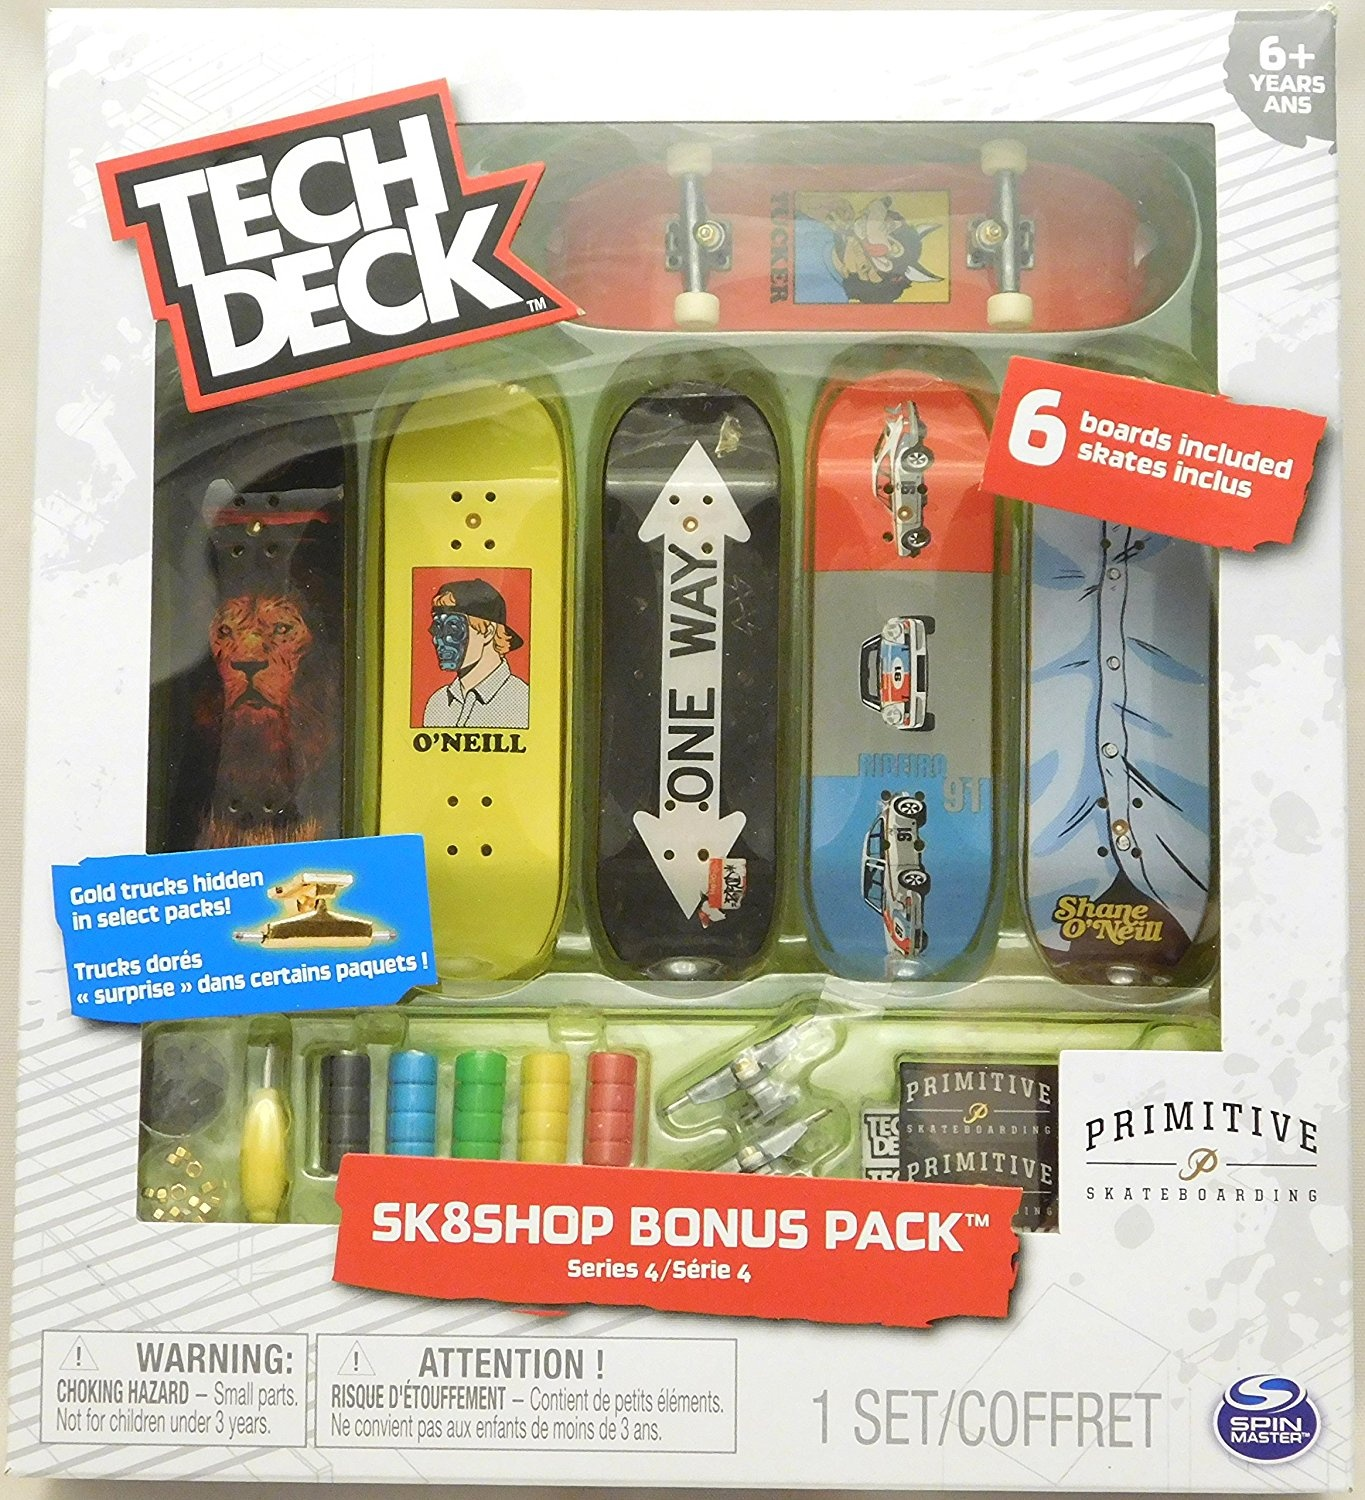 Tech Deck - Sk8shop Bonus Pack Series 4 - Primitive